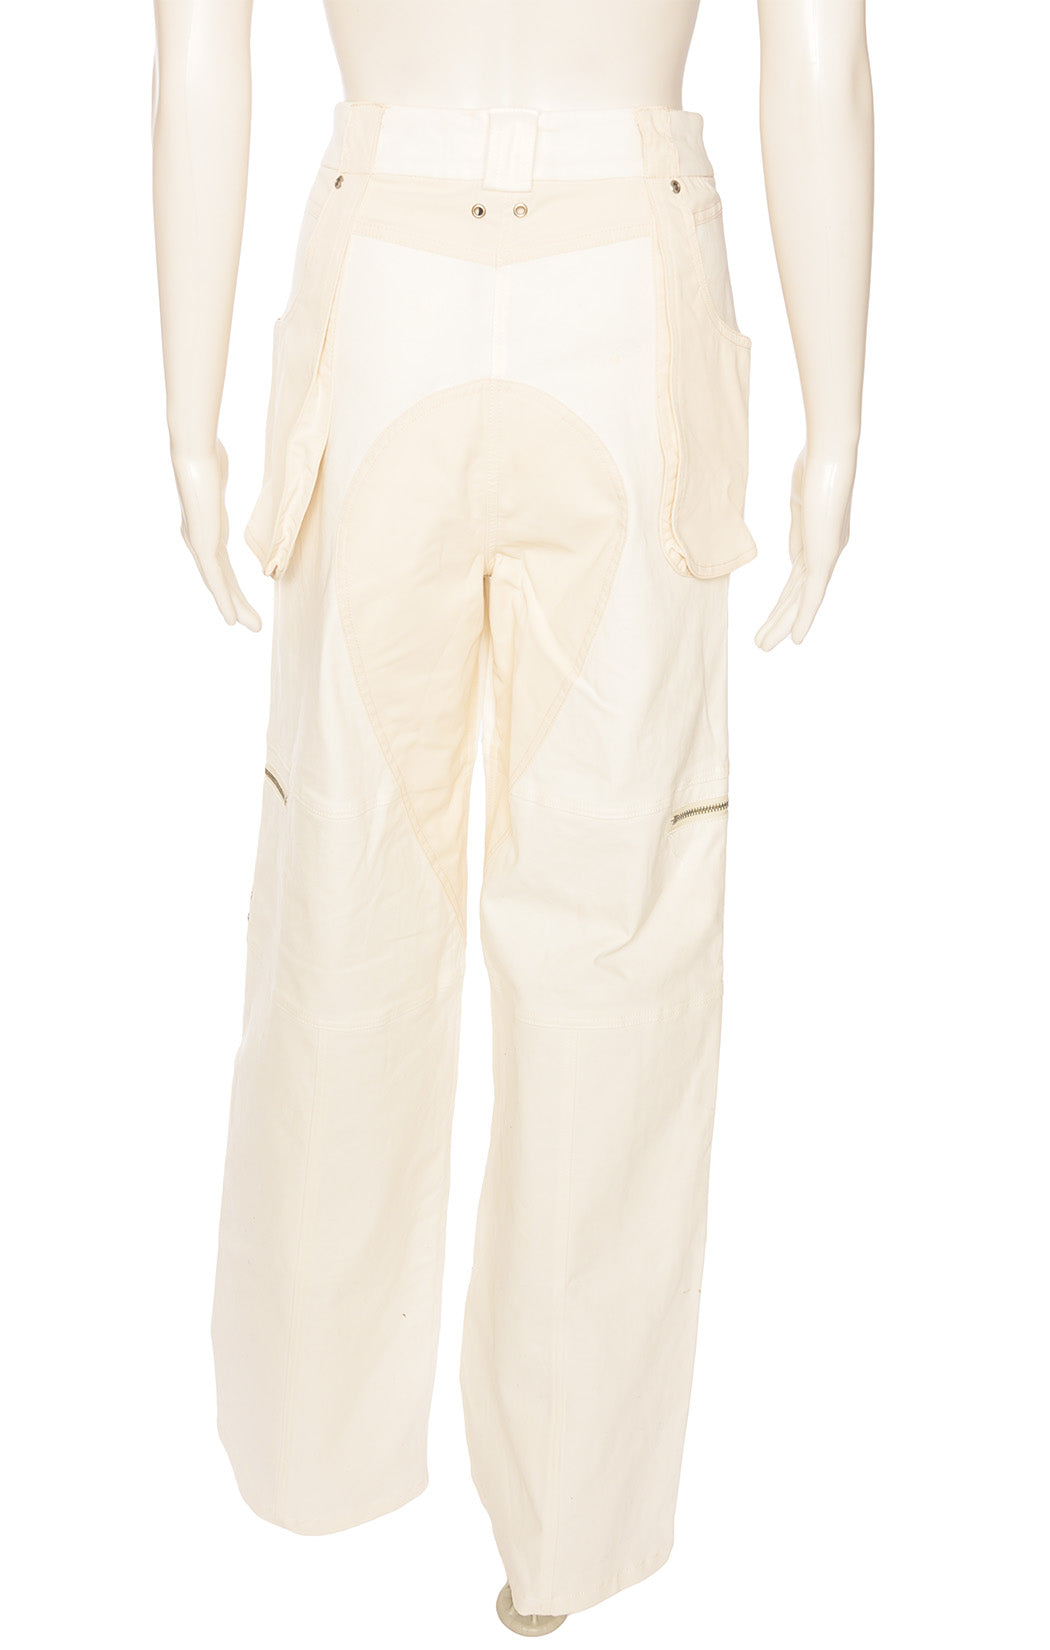 Ivory and beige full volume pant with front pockets, front zipper and decorative silver zippers